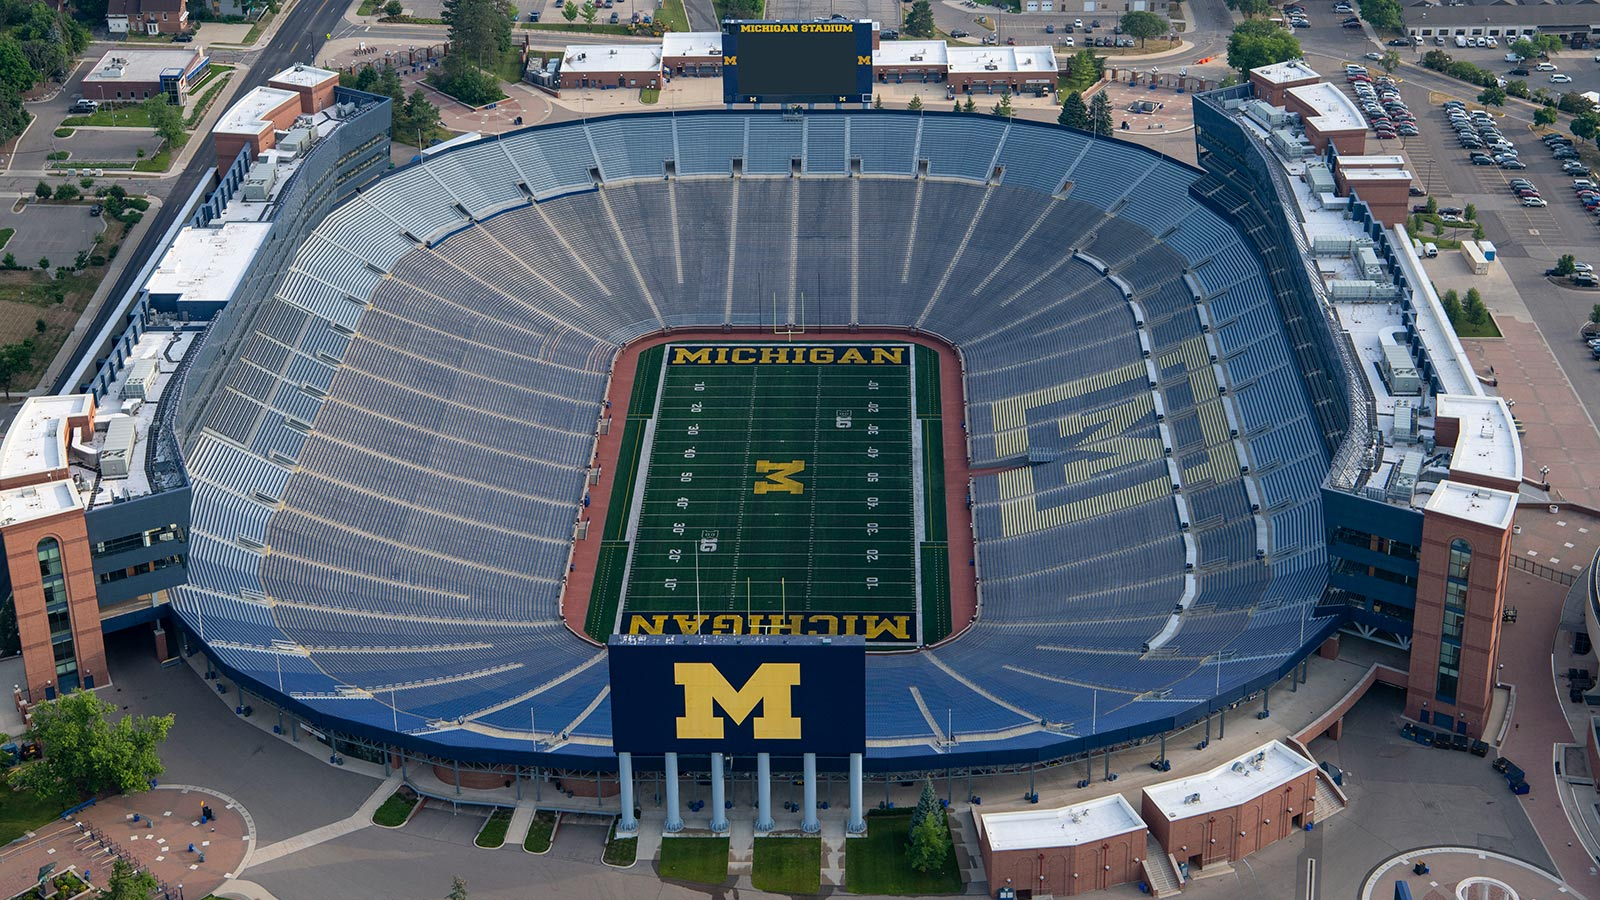 michigan athletics announces michigan stadium game day updates university of michigan athletics michigan athletics announces michigan stadium game day updates university of michigan athletics